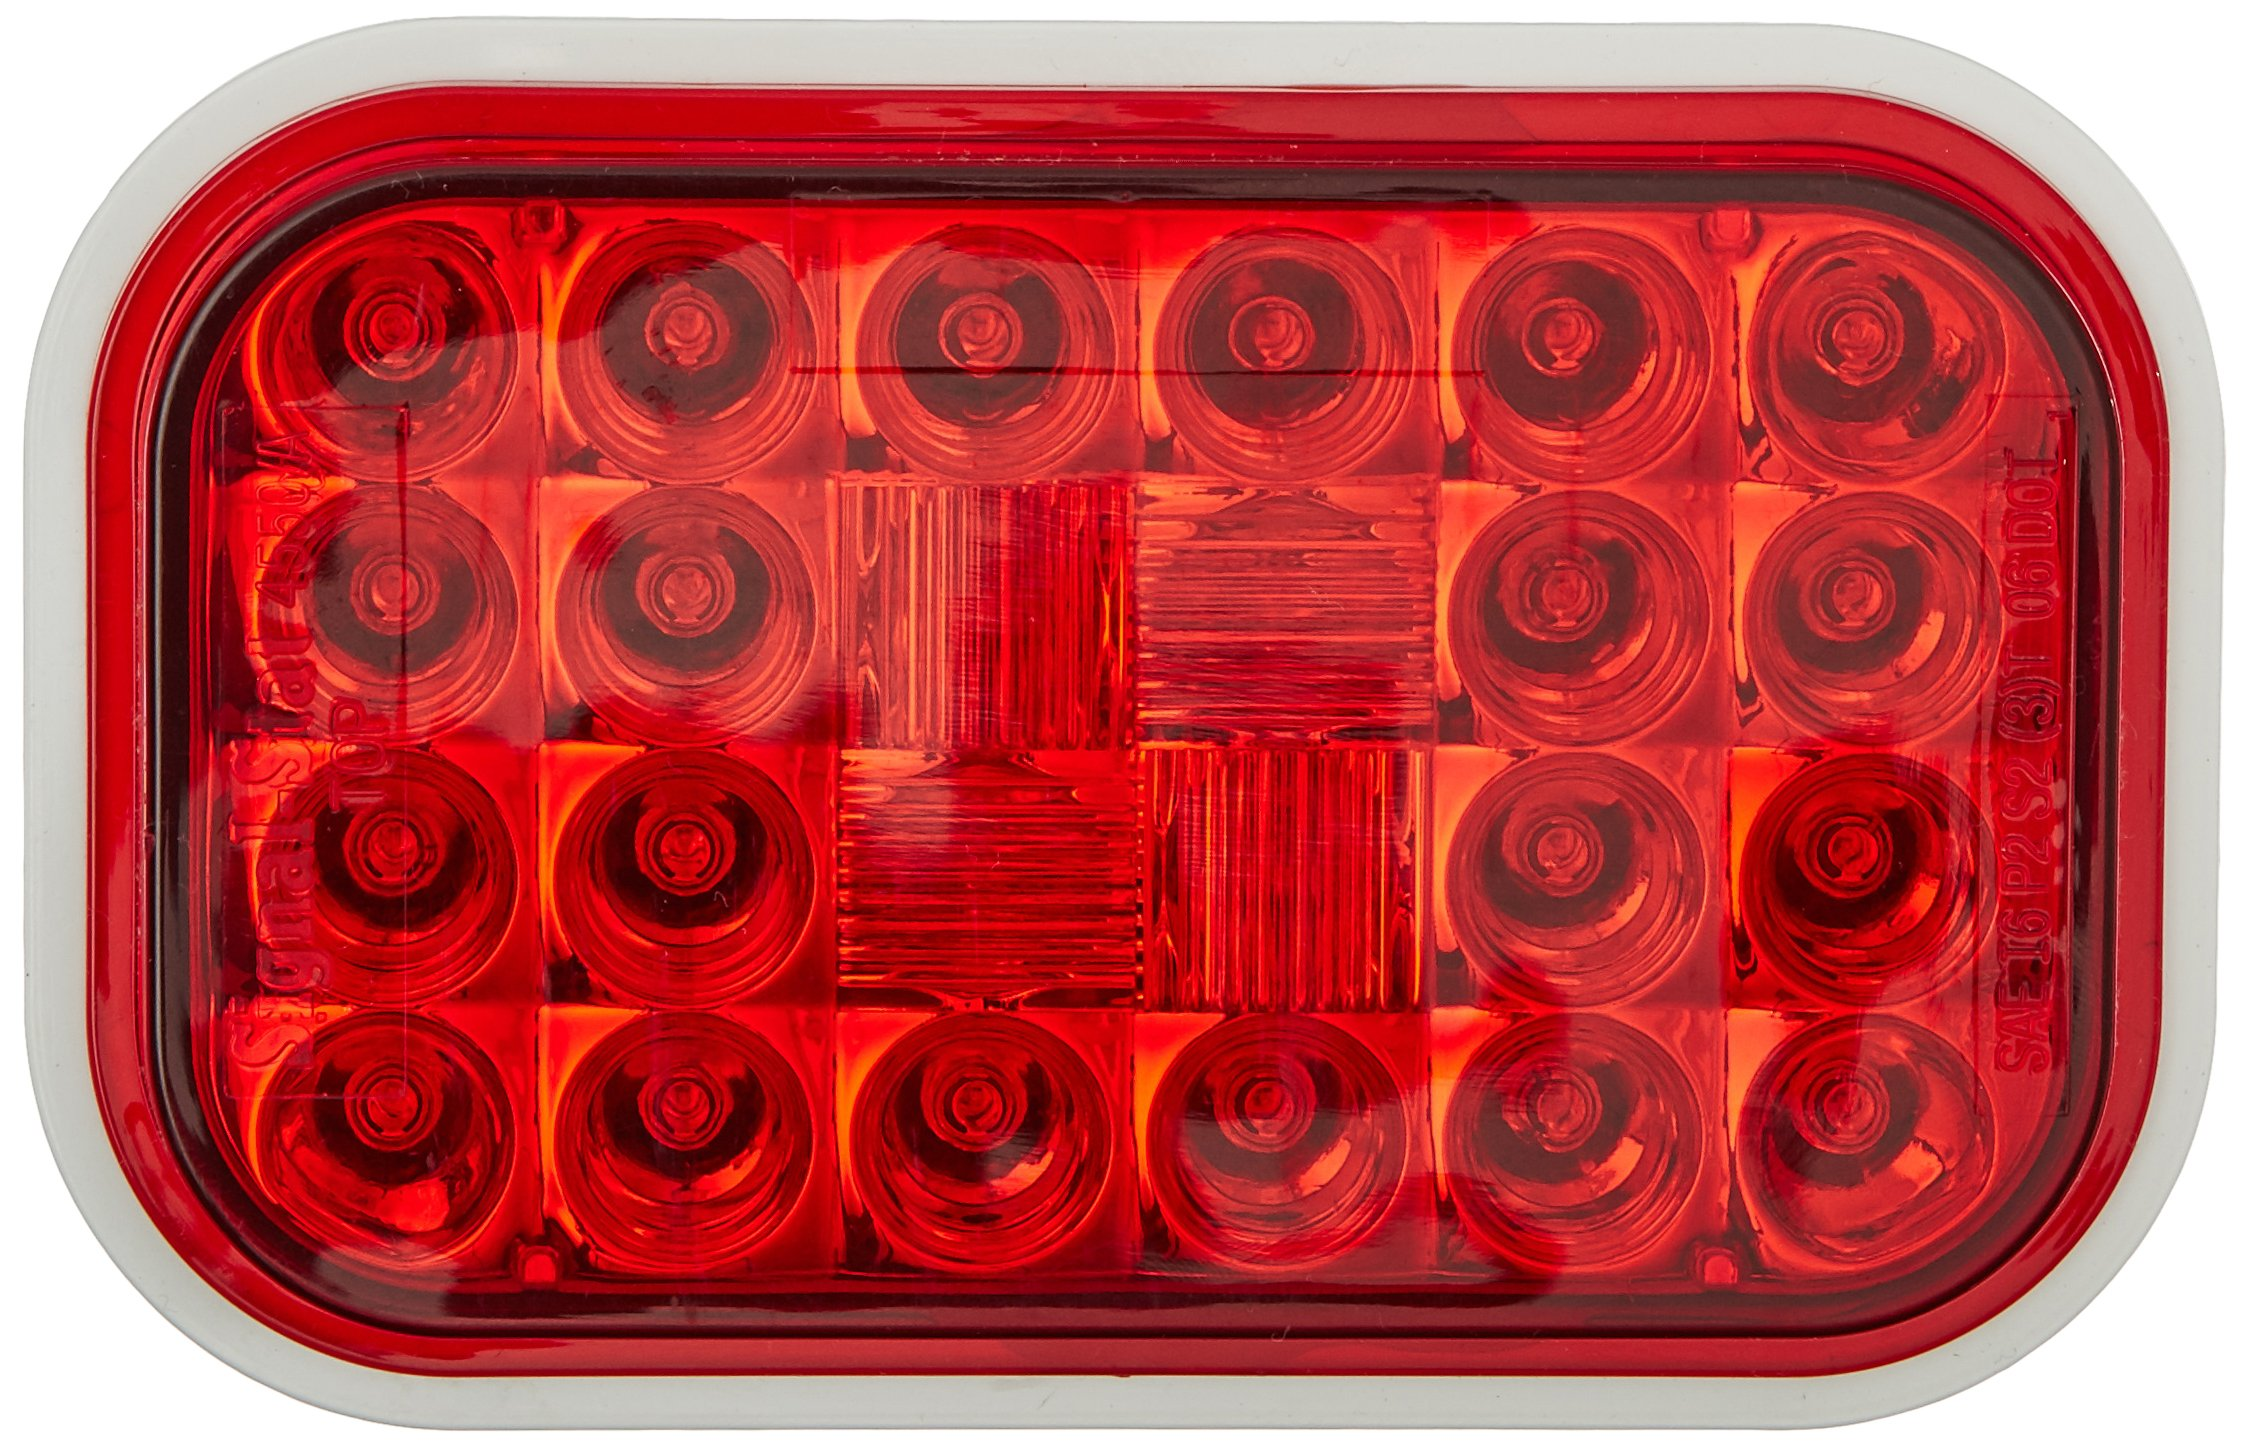 Truck-Lite (4550) Stop/Turn/Tail Lamp